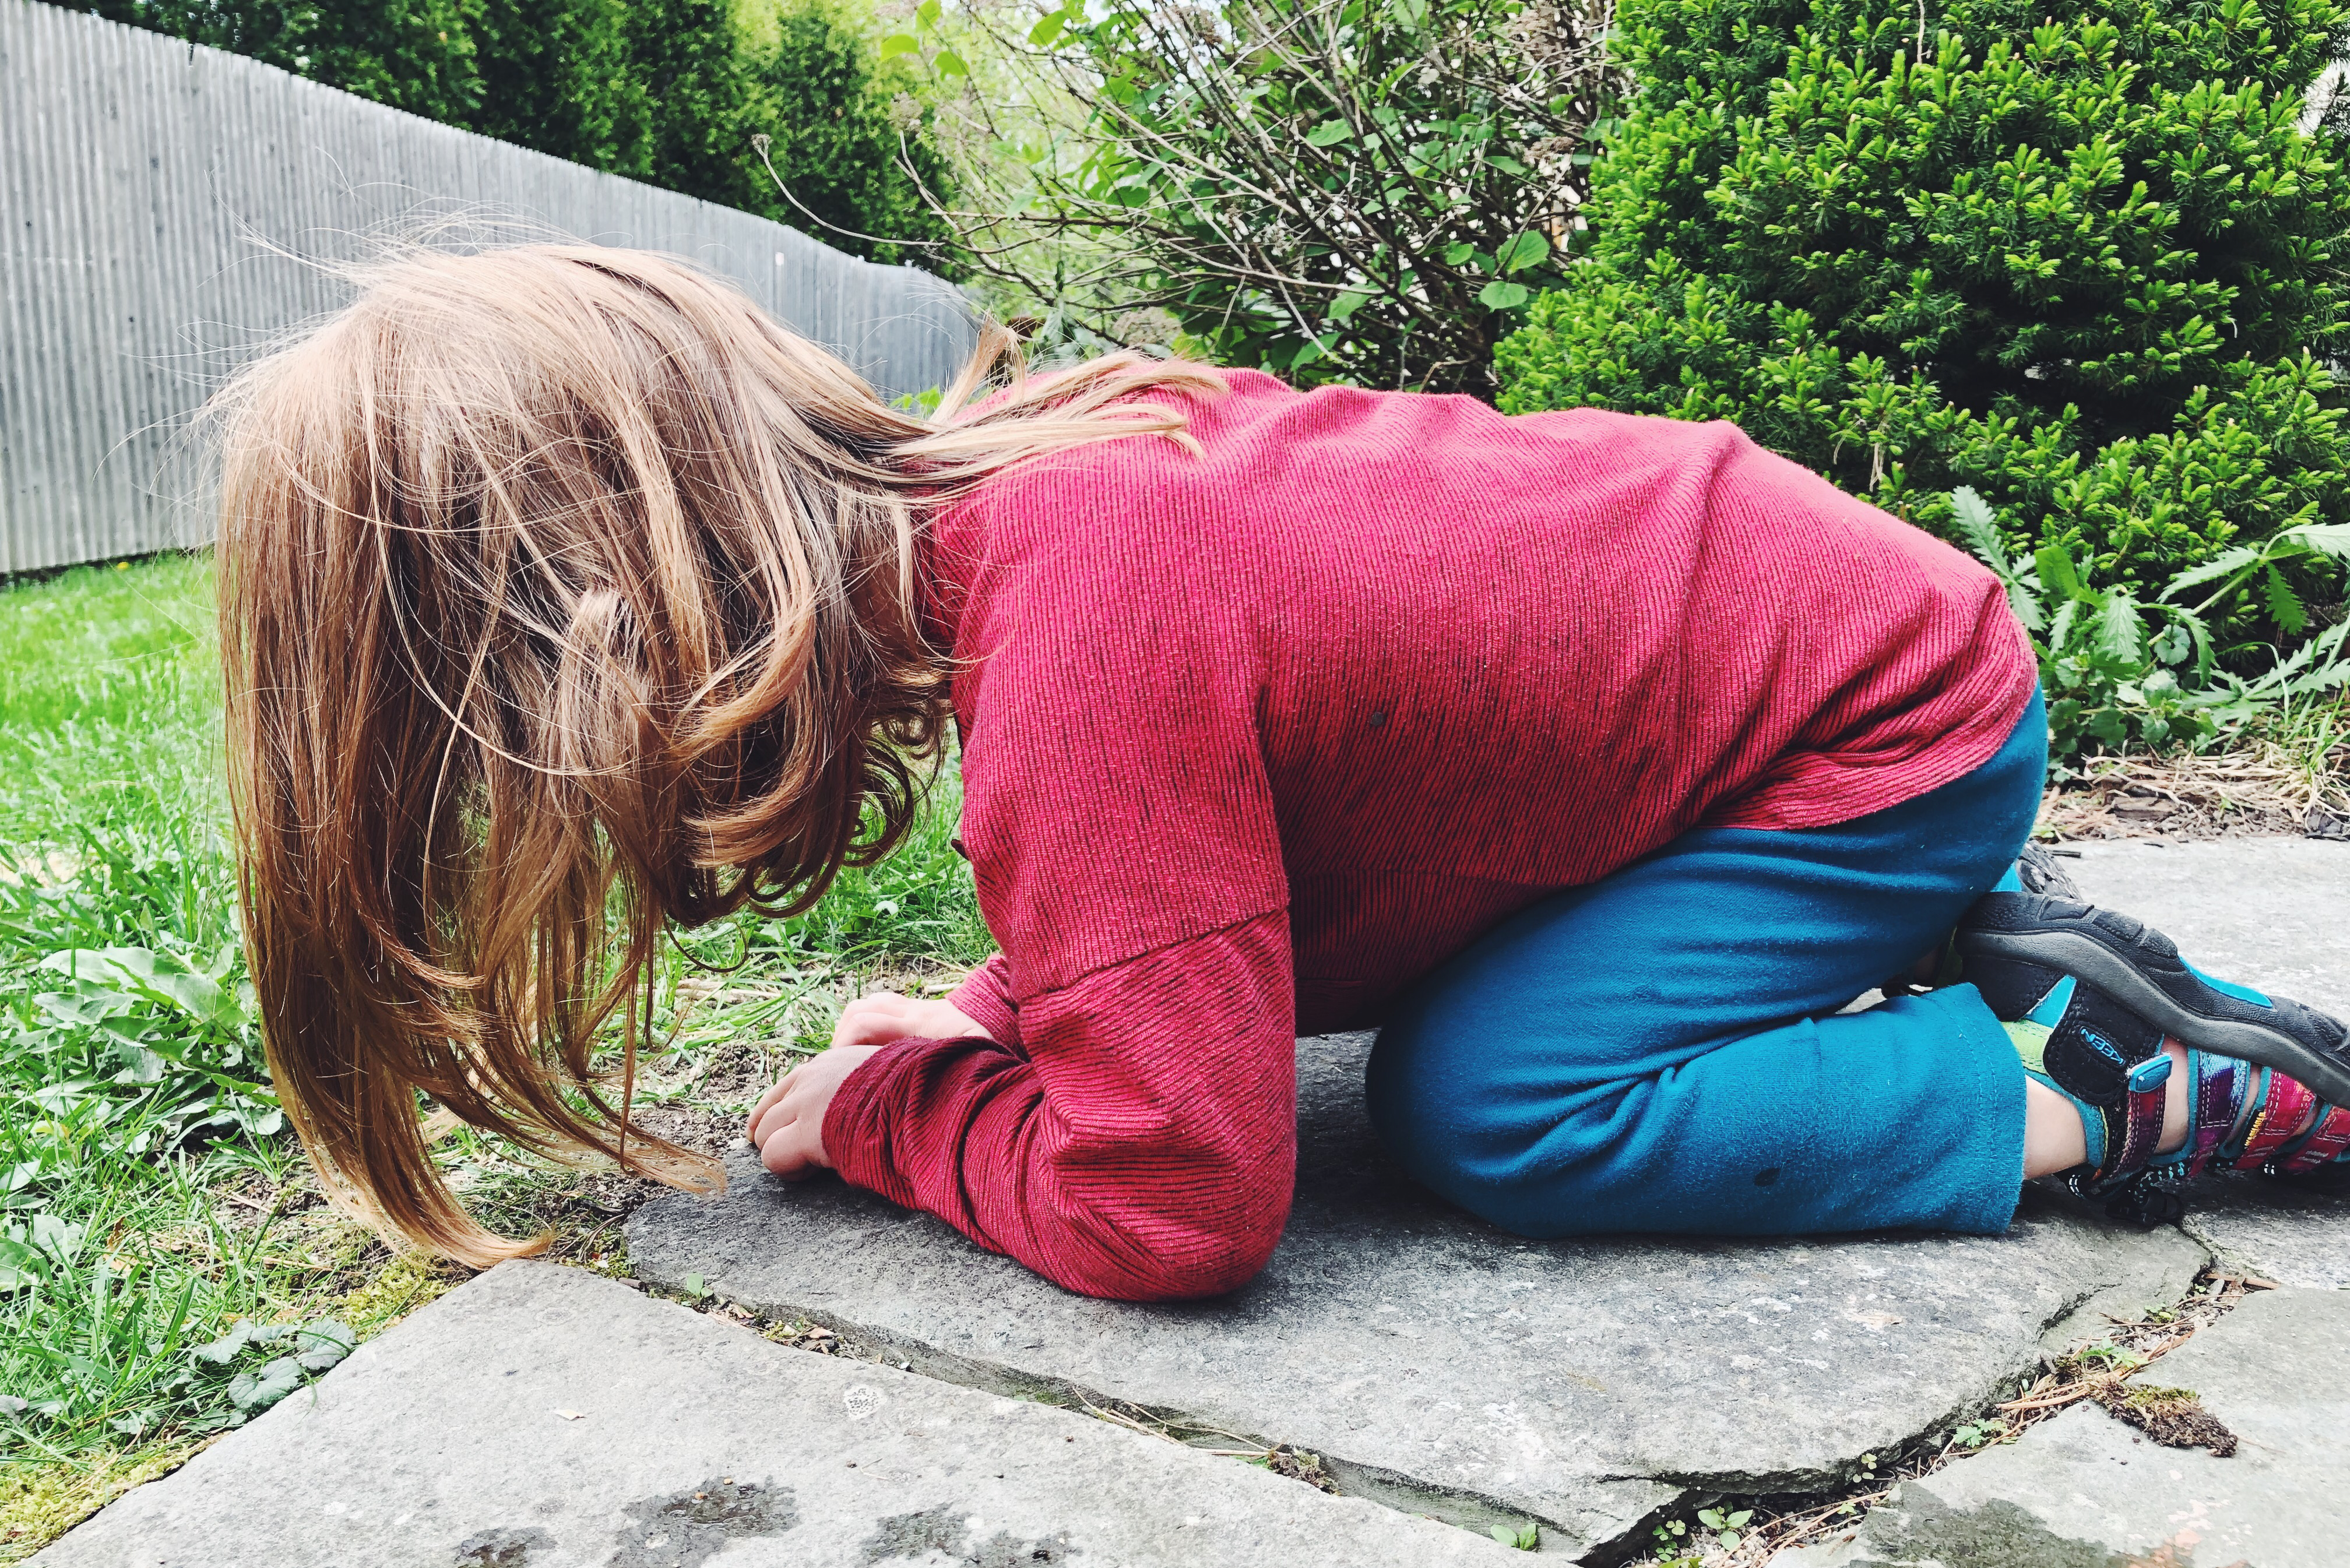 Young child in a red shirt watching ants, while their long hair touches the ground.